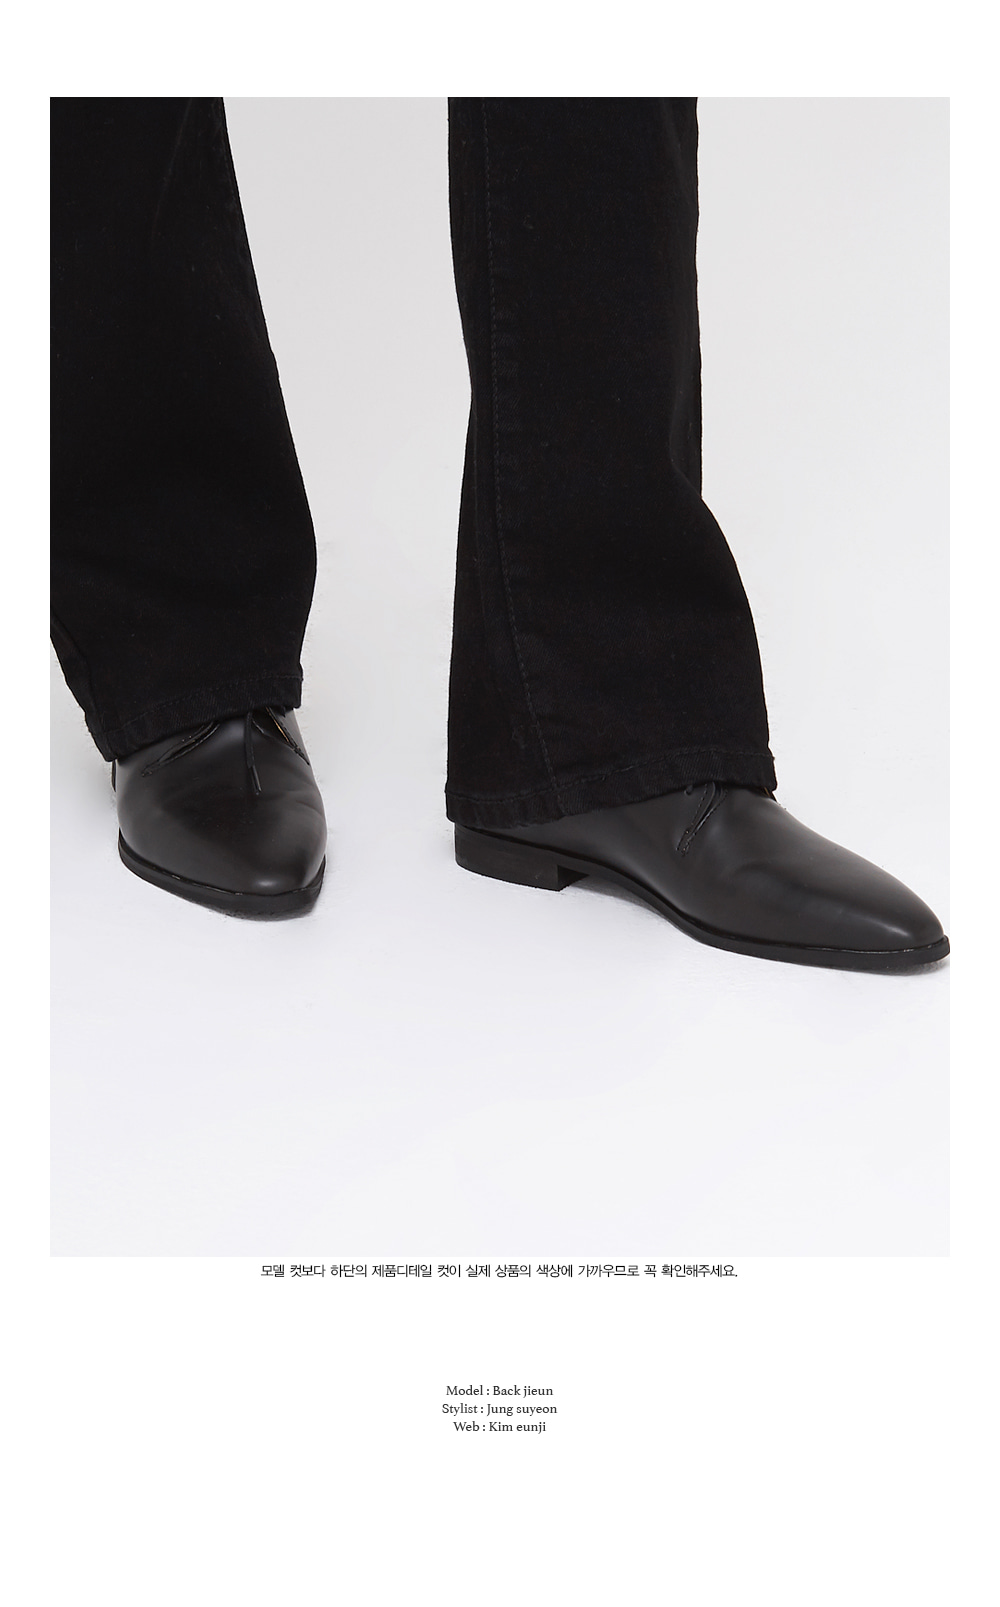 hake semi boots cut pants